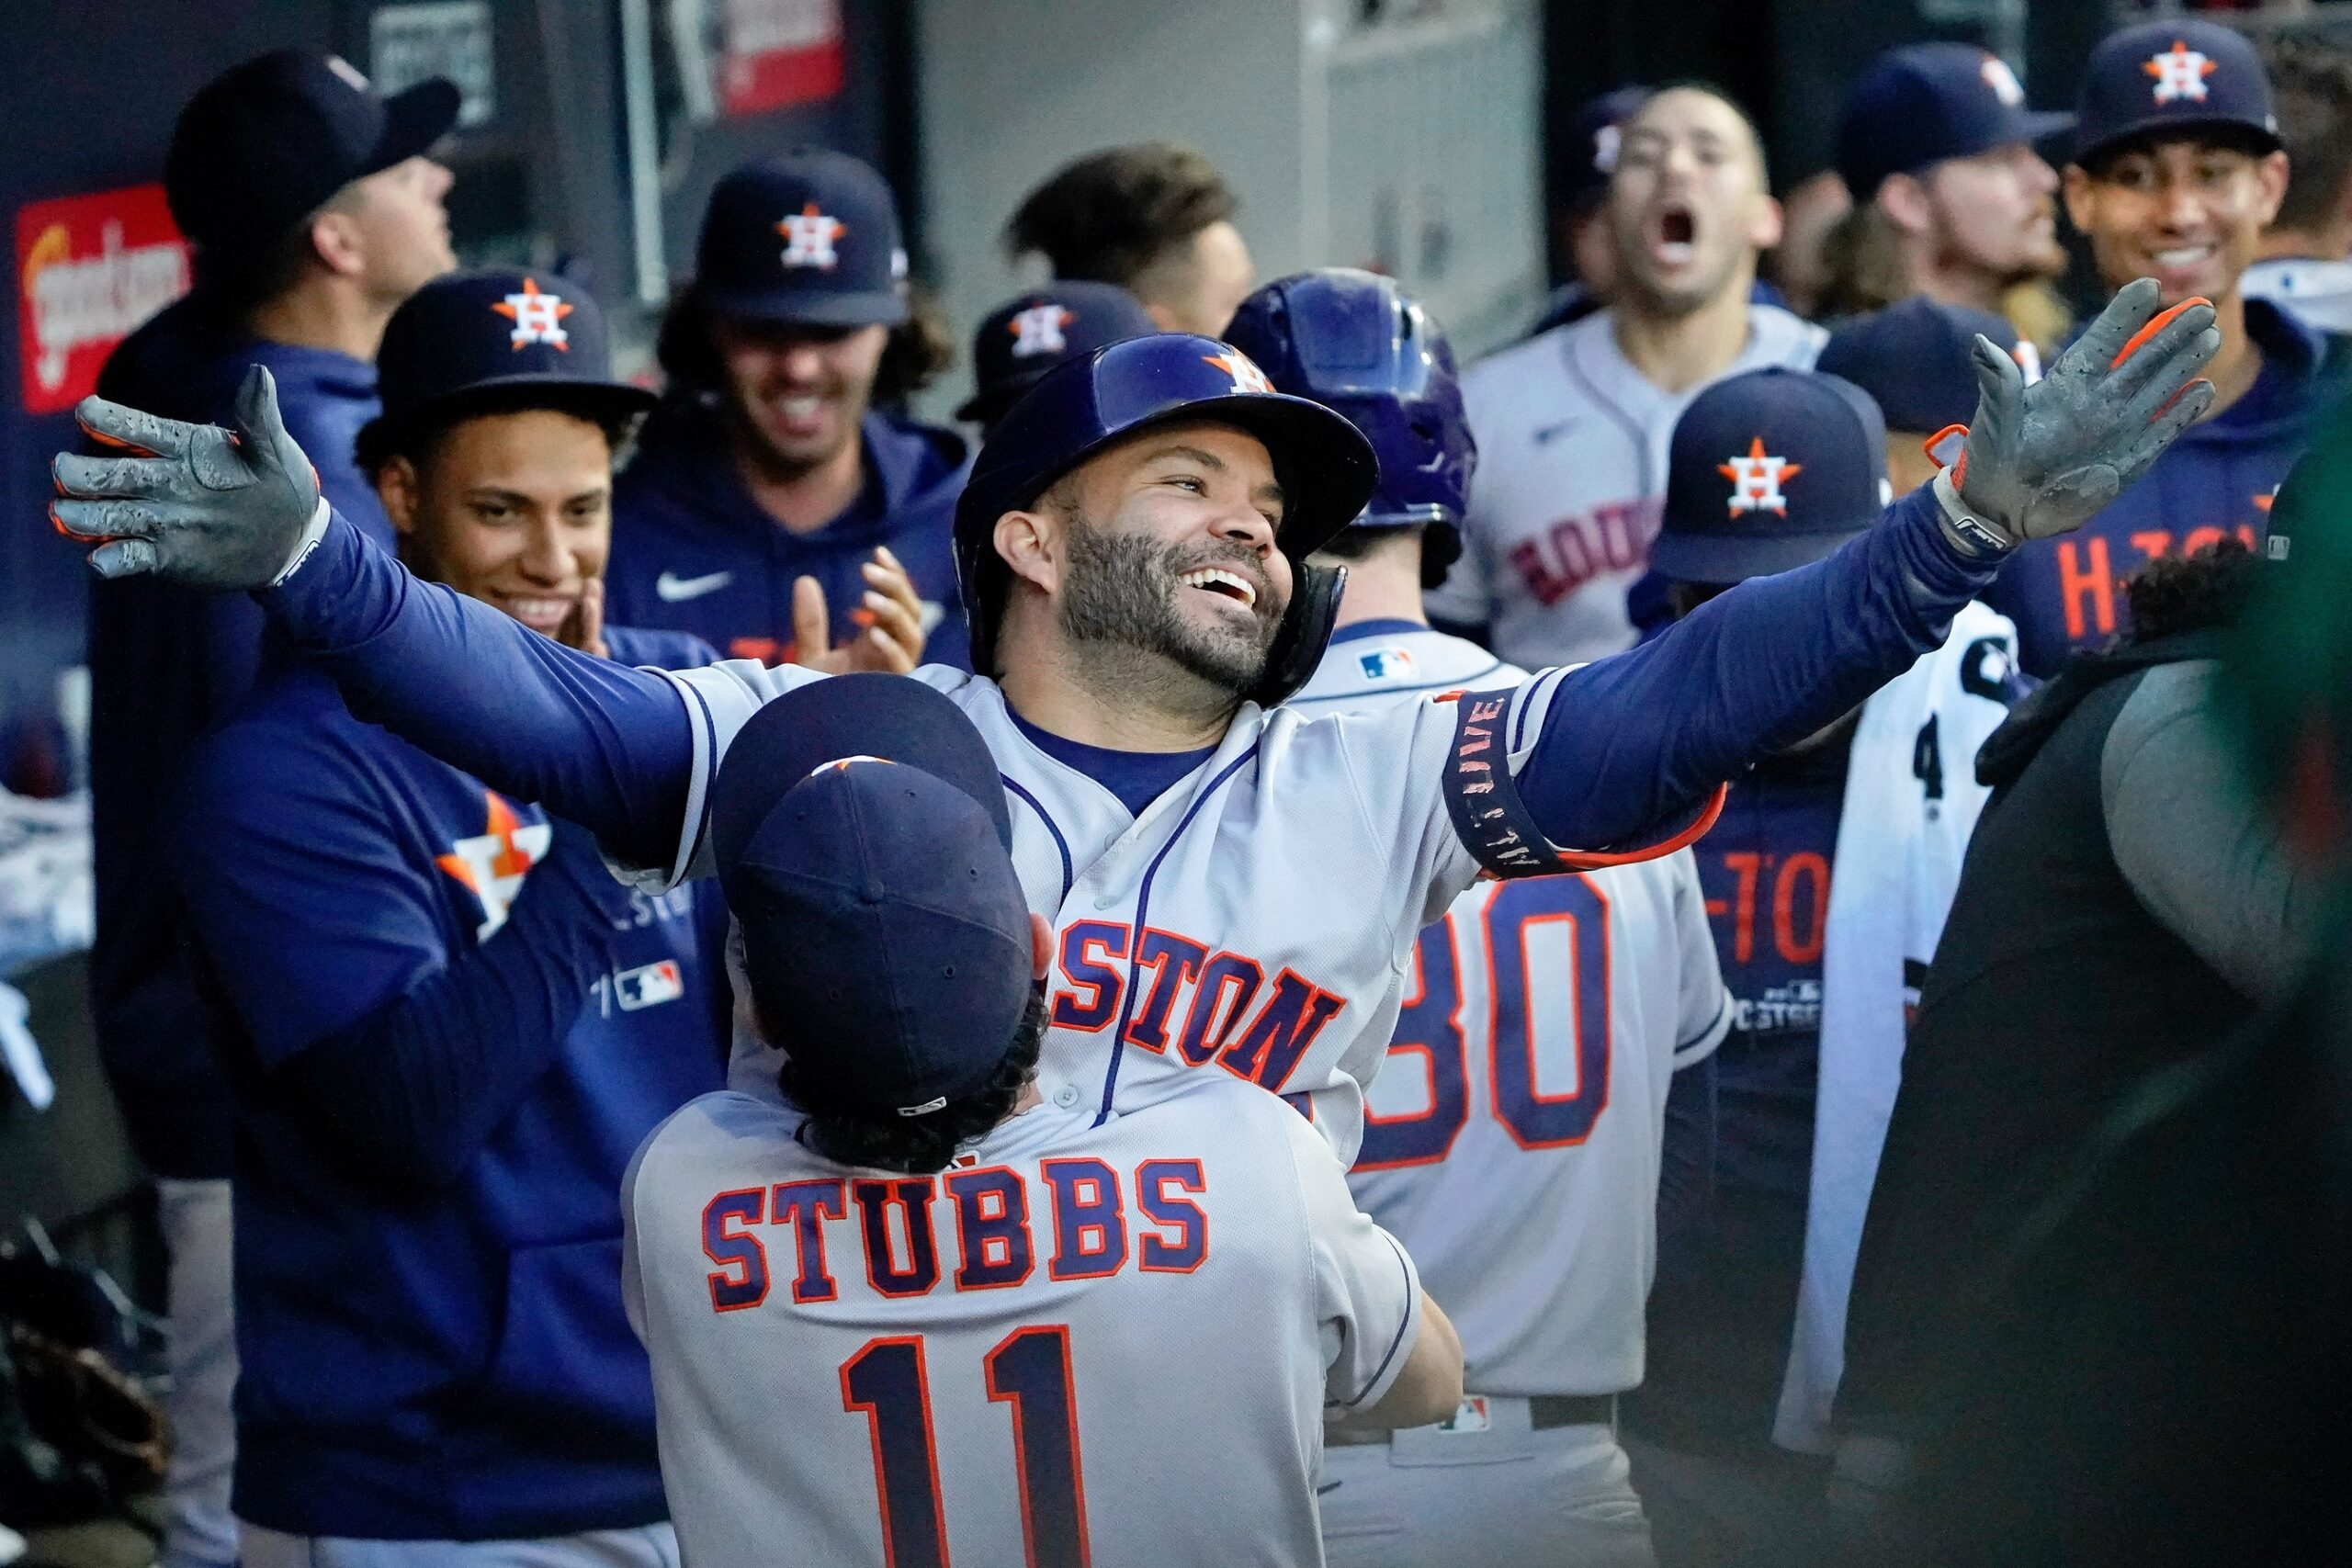 Altuve homers, Astros end White Sox season with 10-1 blowout win